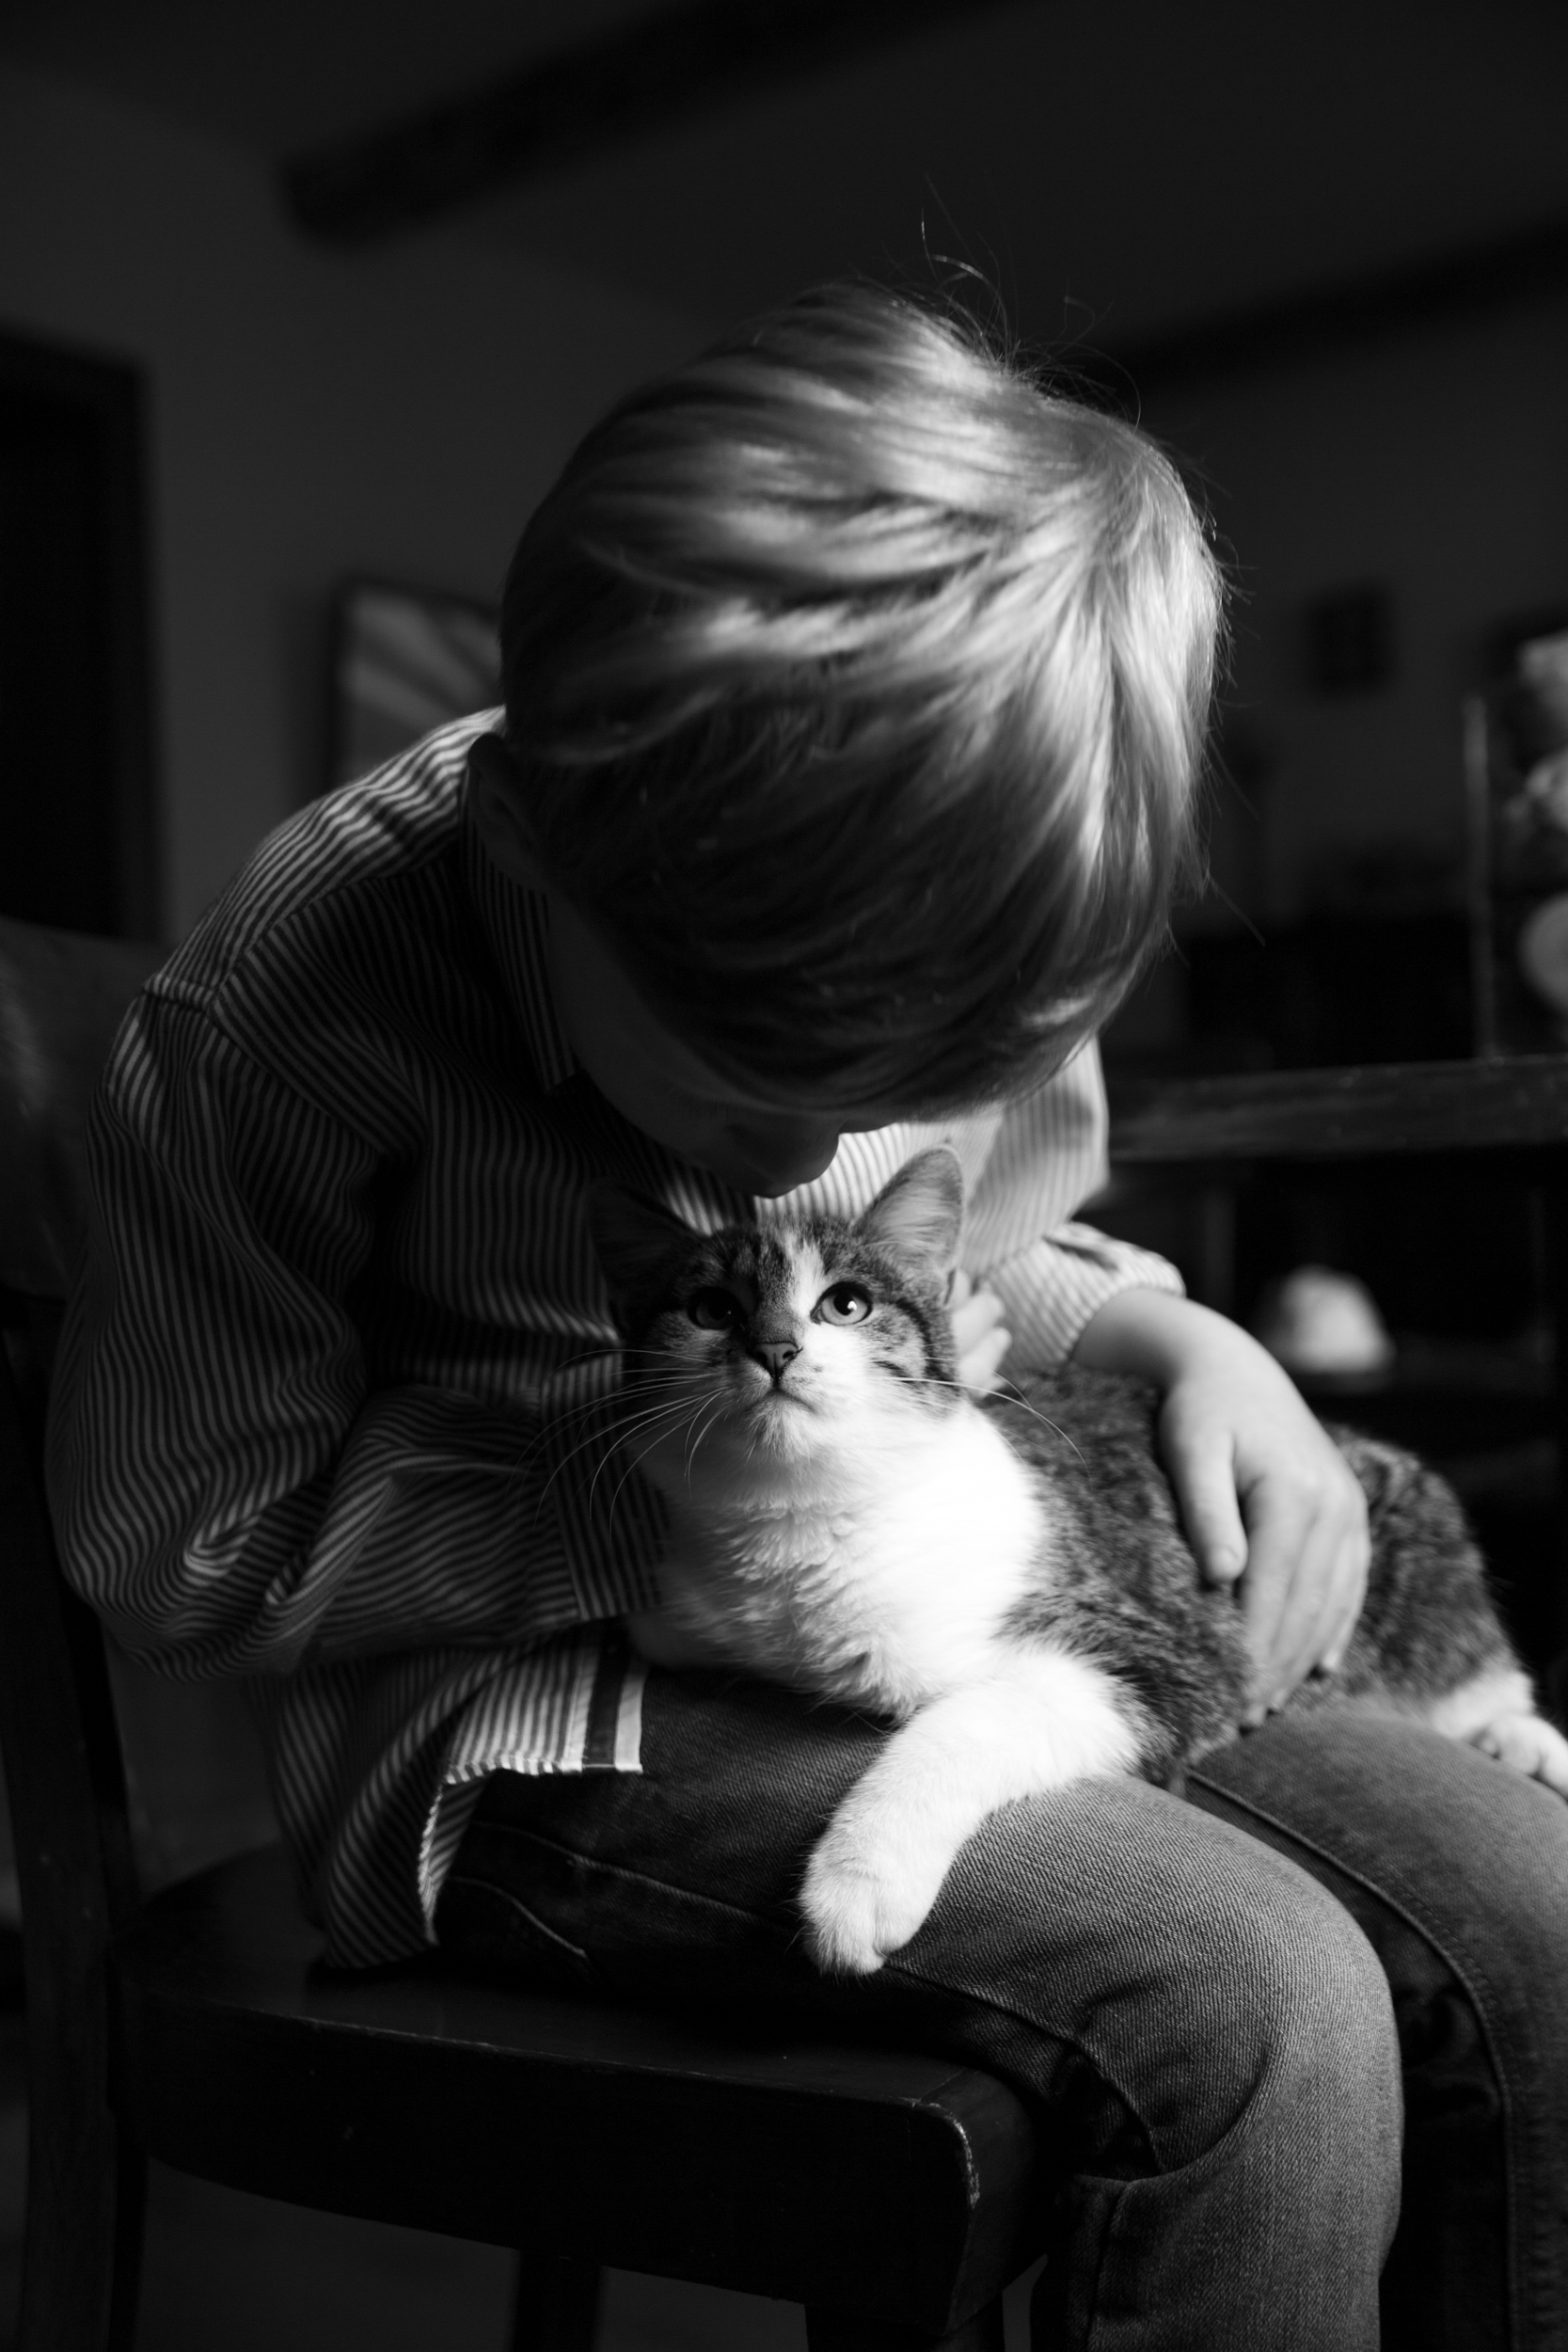 My eldest with Luna, one of our cats.